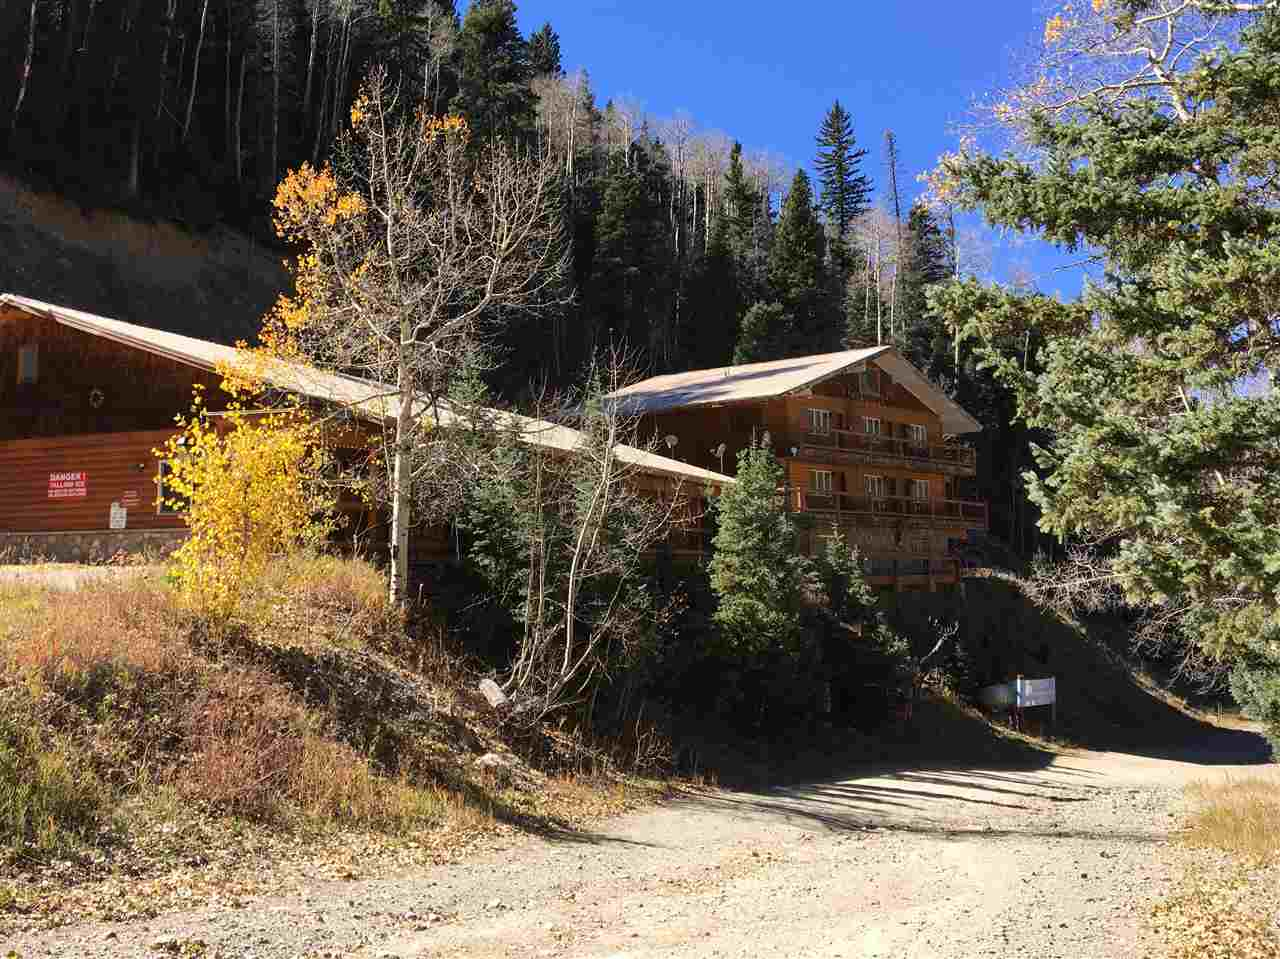 22 Firehouse, Taos Ski Valley, NM 87515